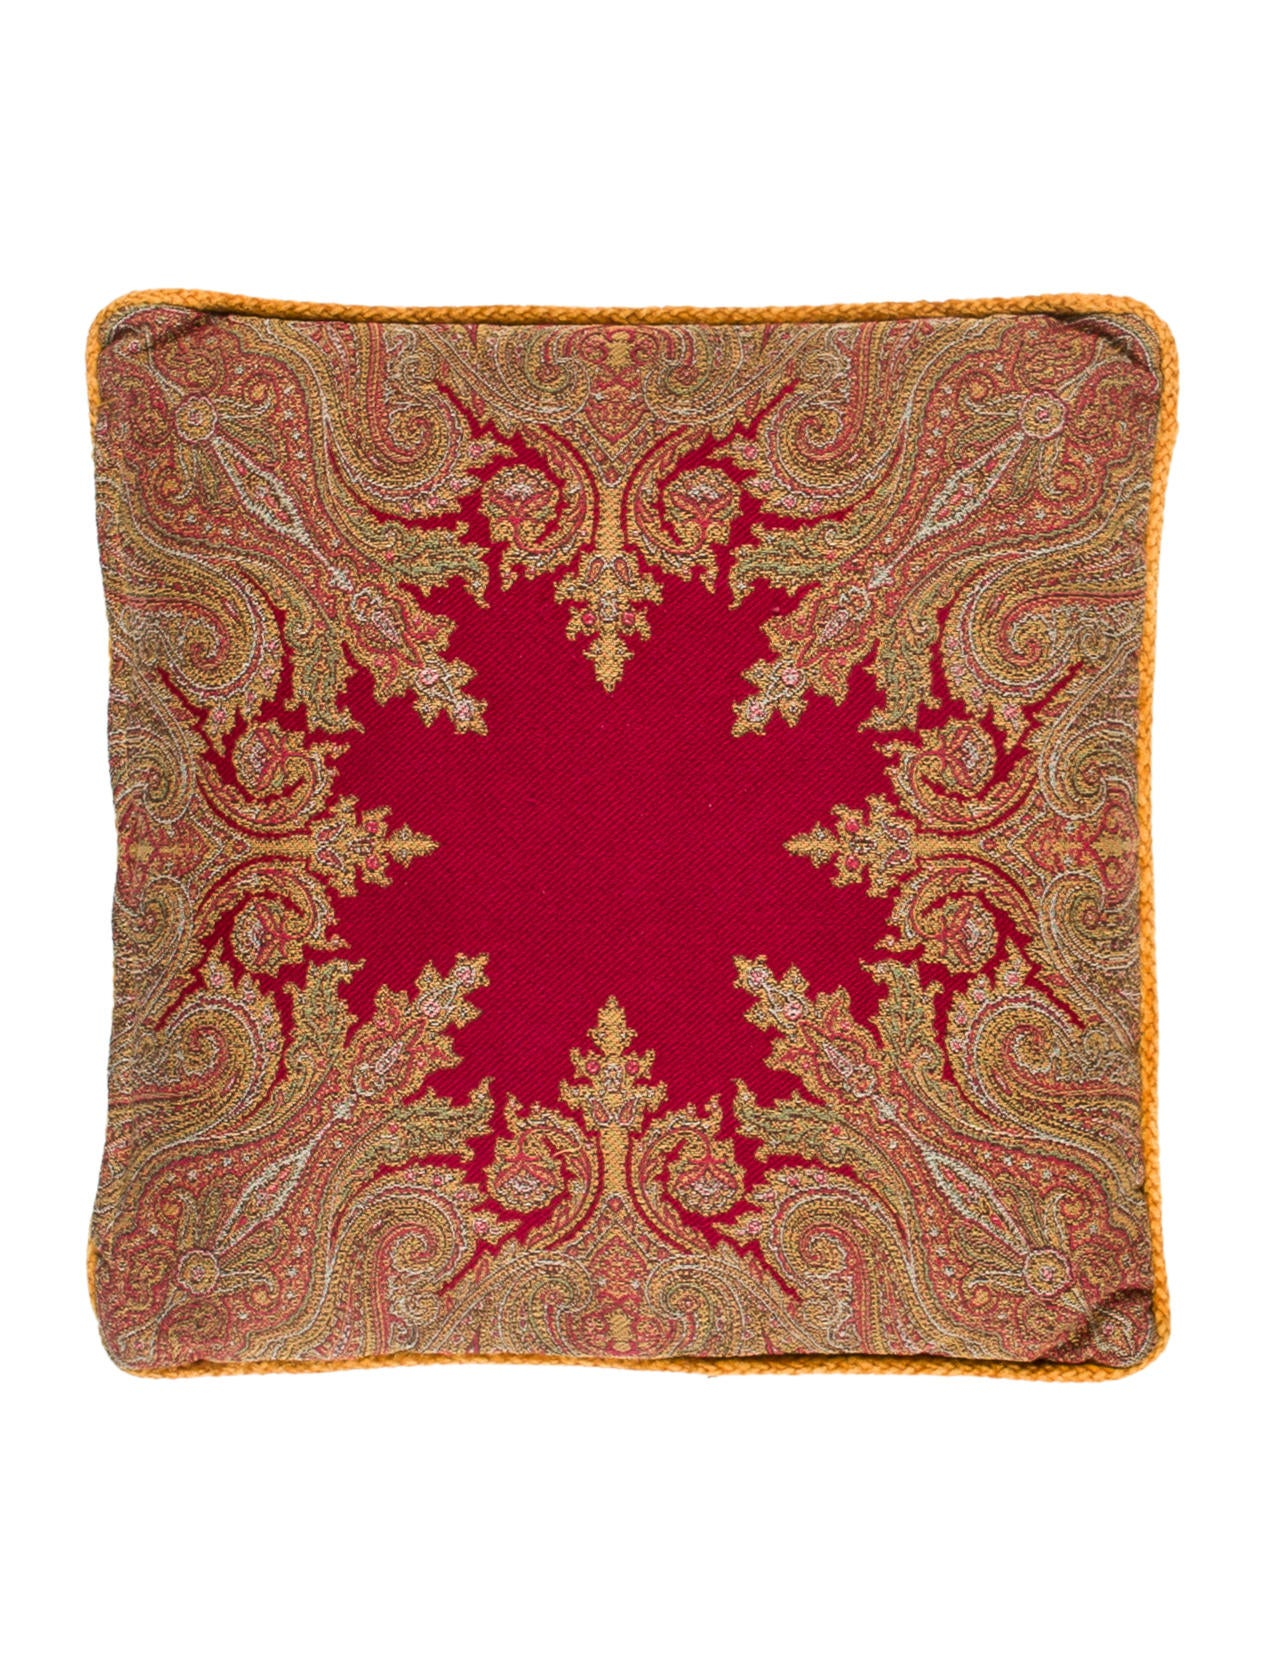 Decorative Pillows Retail : Etro Home Patterned Throw Pillow - Bedding And Bath - ETH20126 The RealReal